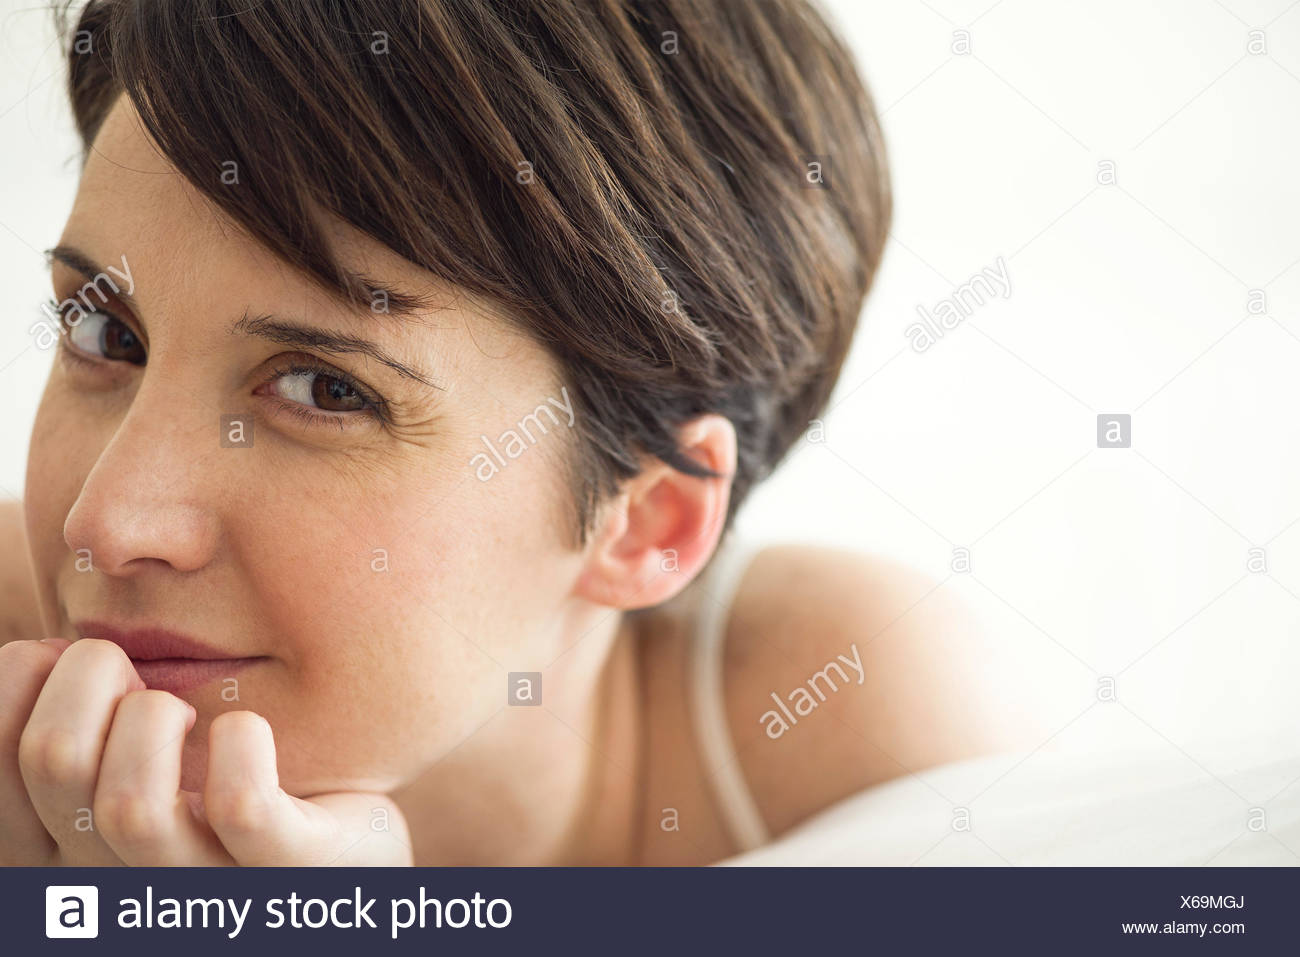 Woman relaxing on bed, portrait - Stock Image